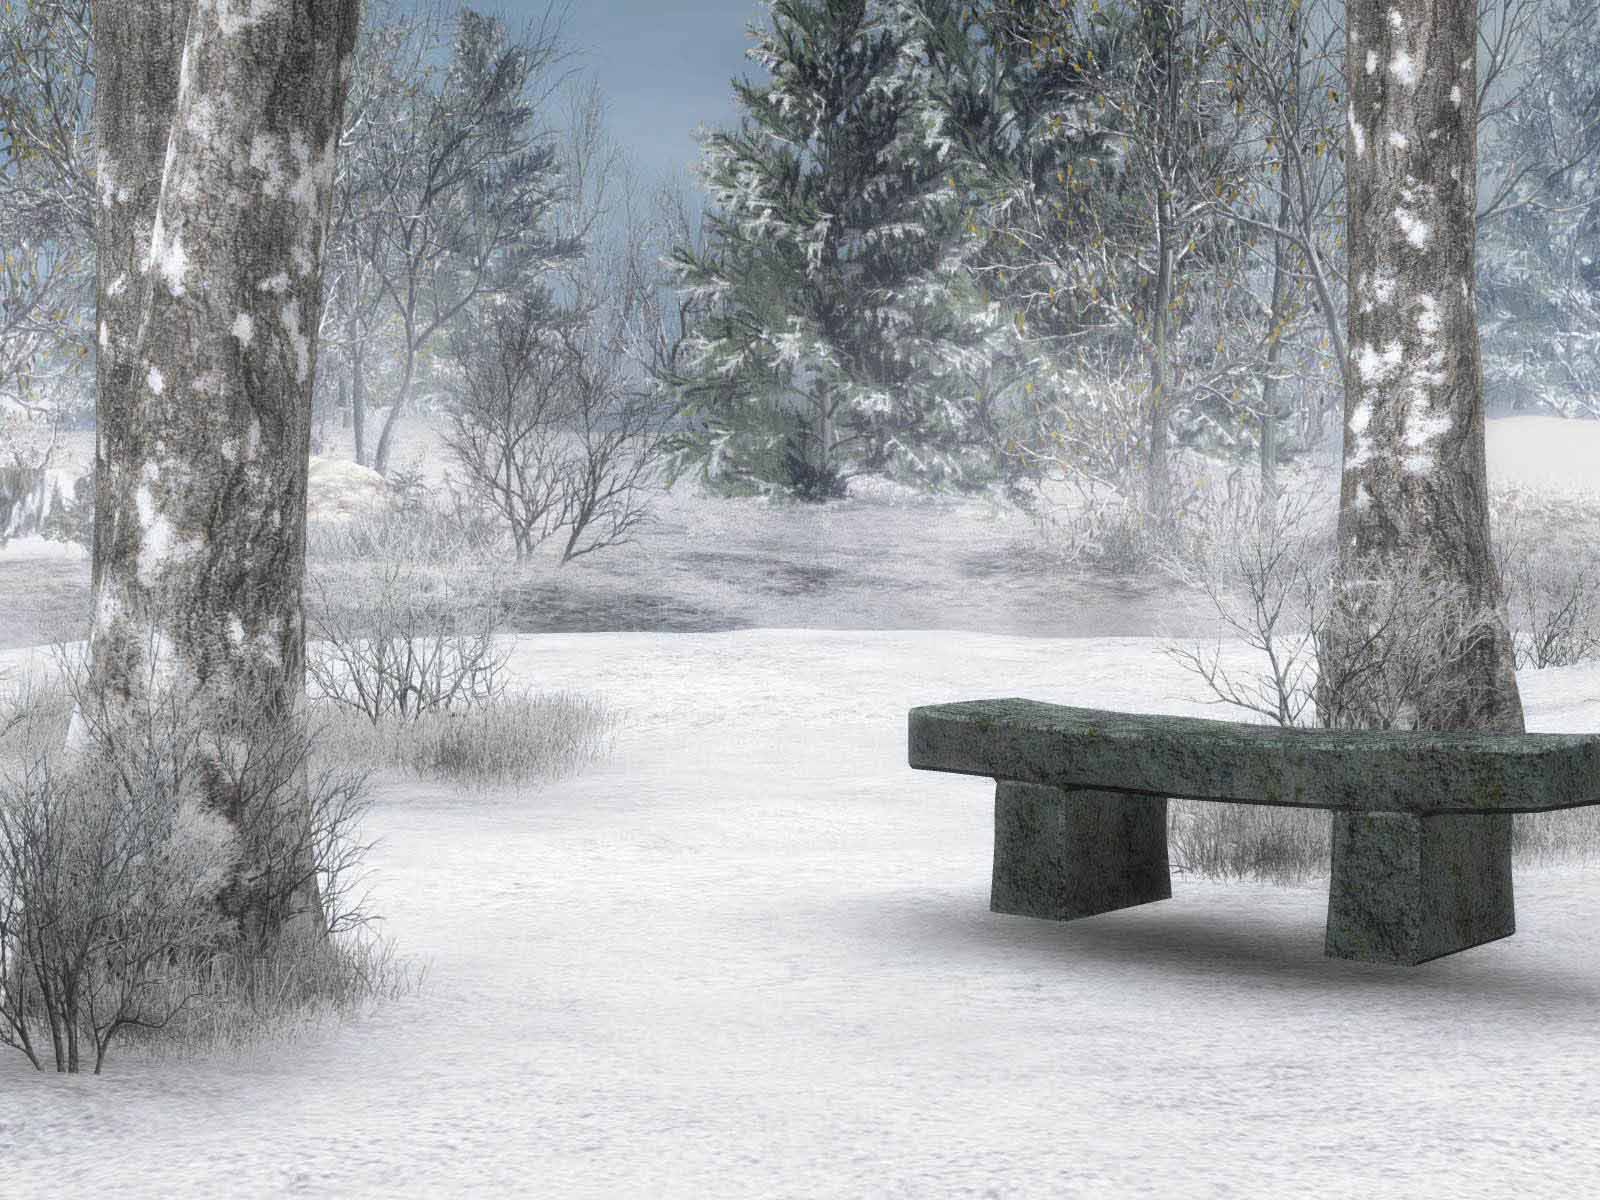 Hd Wallpapers Winter Scenes For Desktop